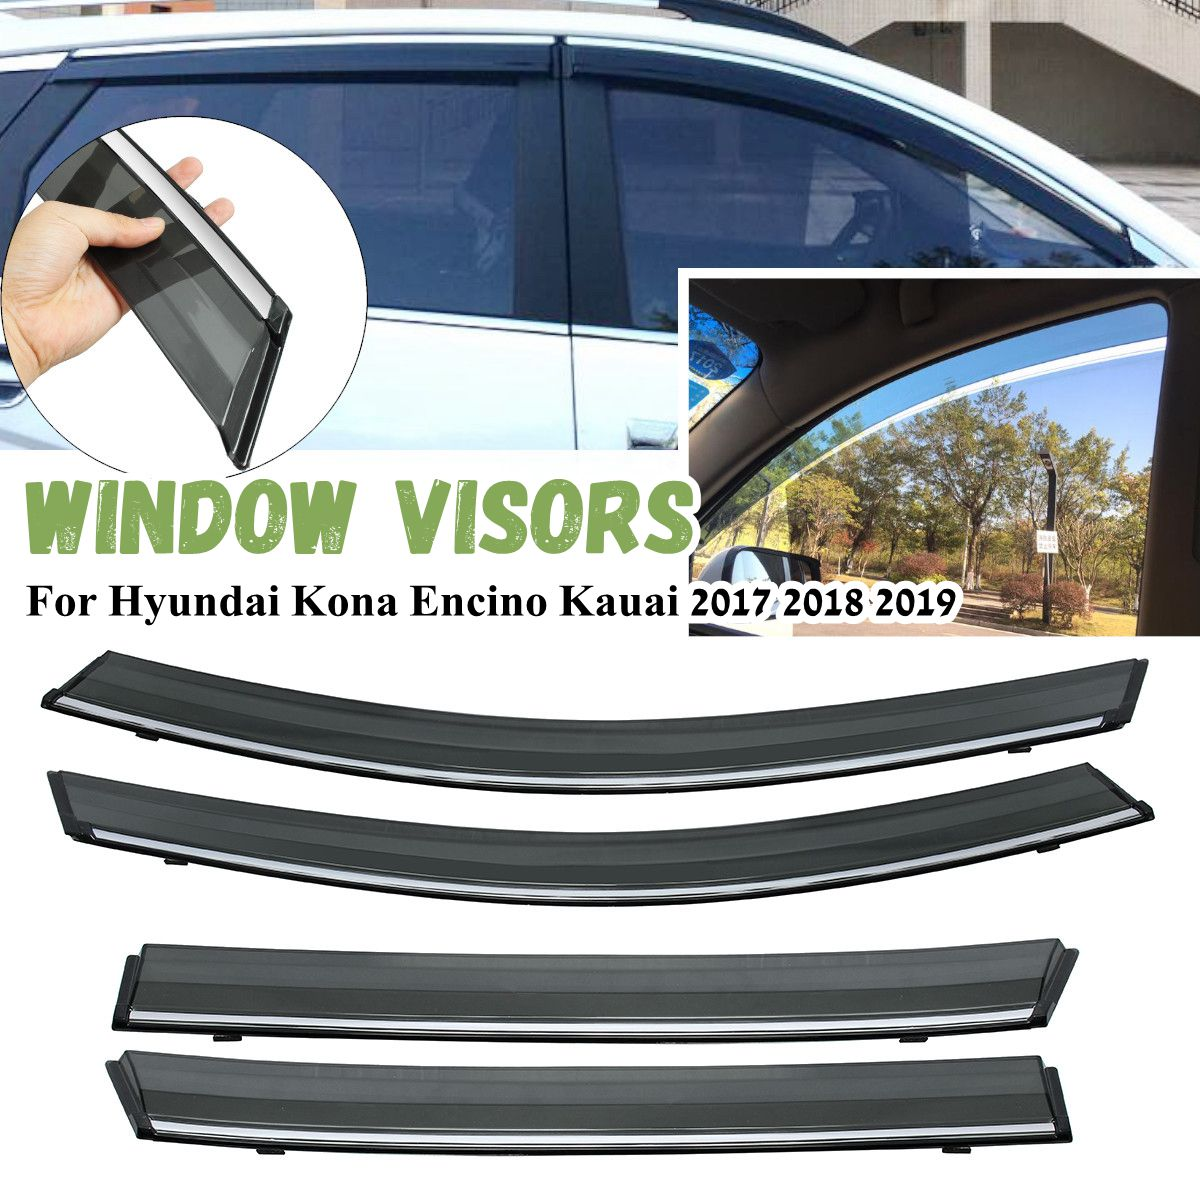 Window Visor Awnings For Hyundai Kona Encino Kauai 2017 2018 2019 Sun Rain Guard Deflector Car